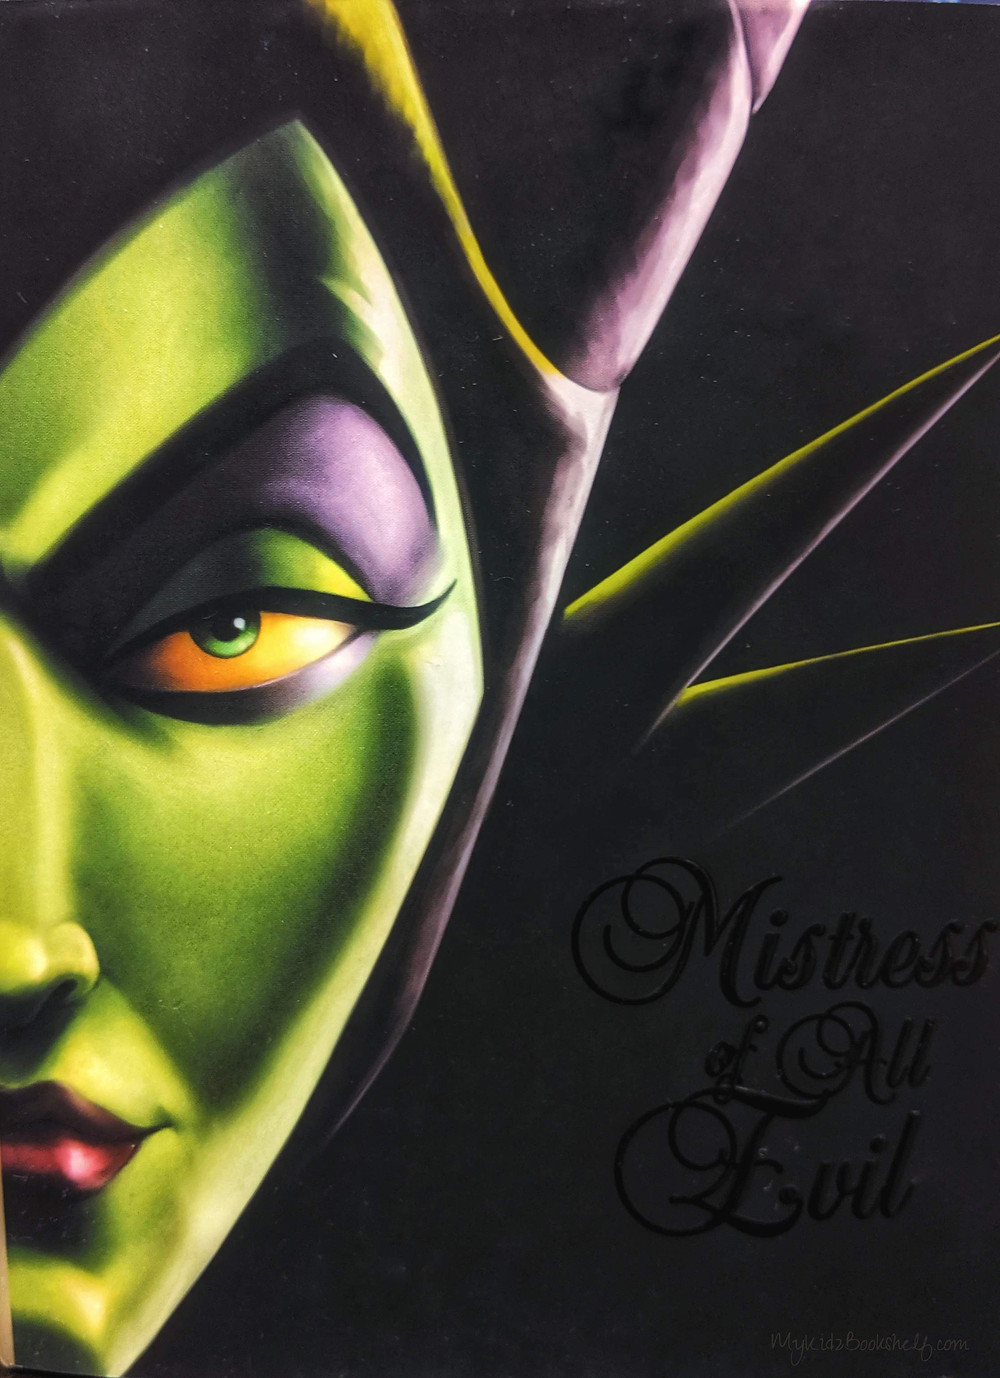 image-of-maleficent-book